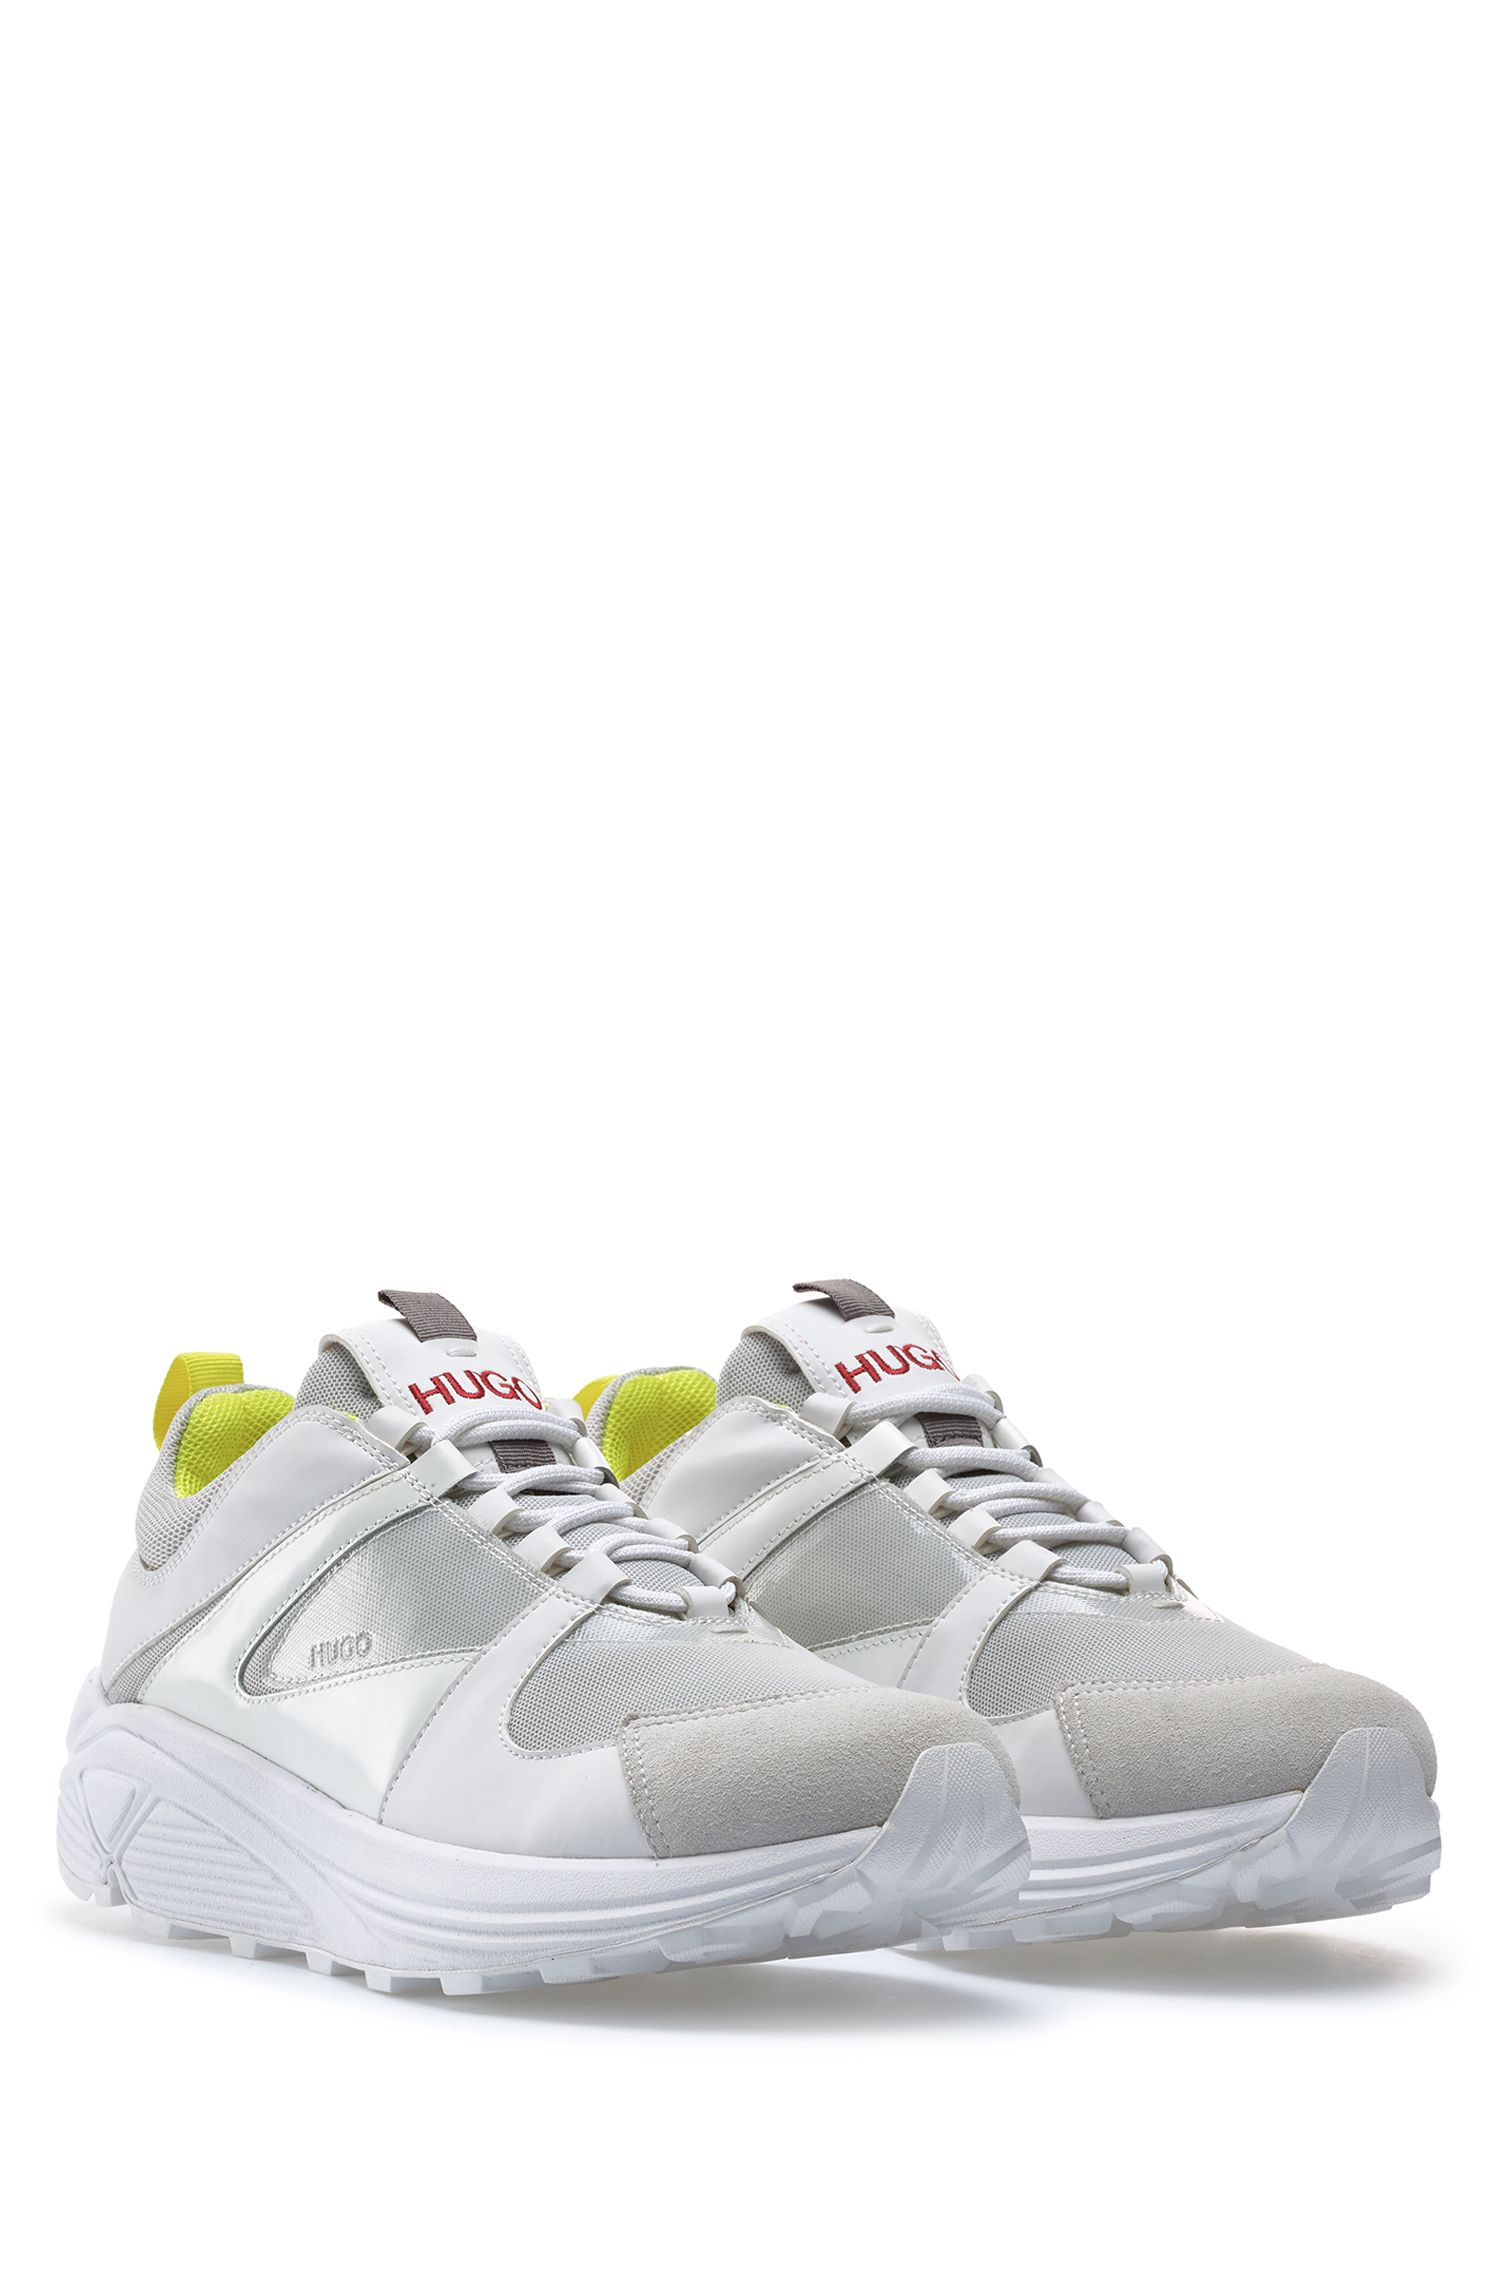 Running-inspired hybrid trainers with Vibram sole, White